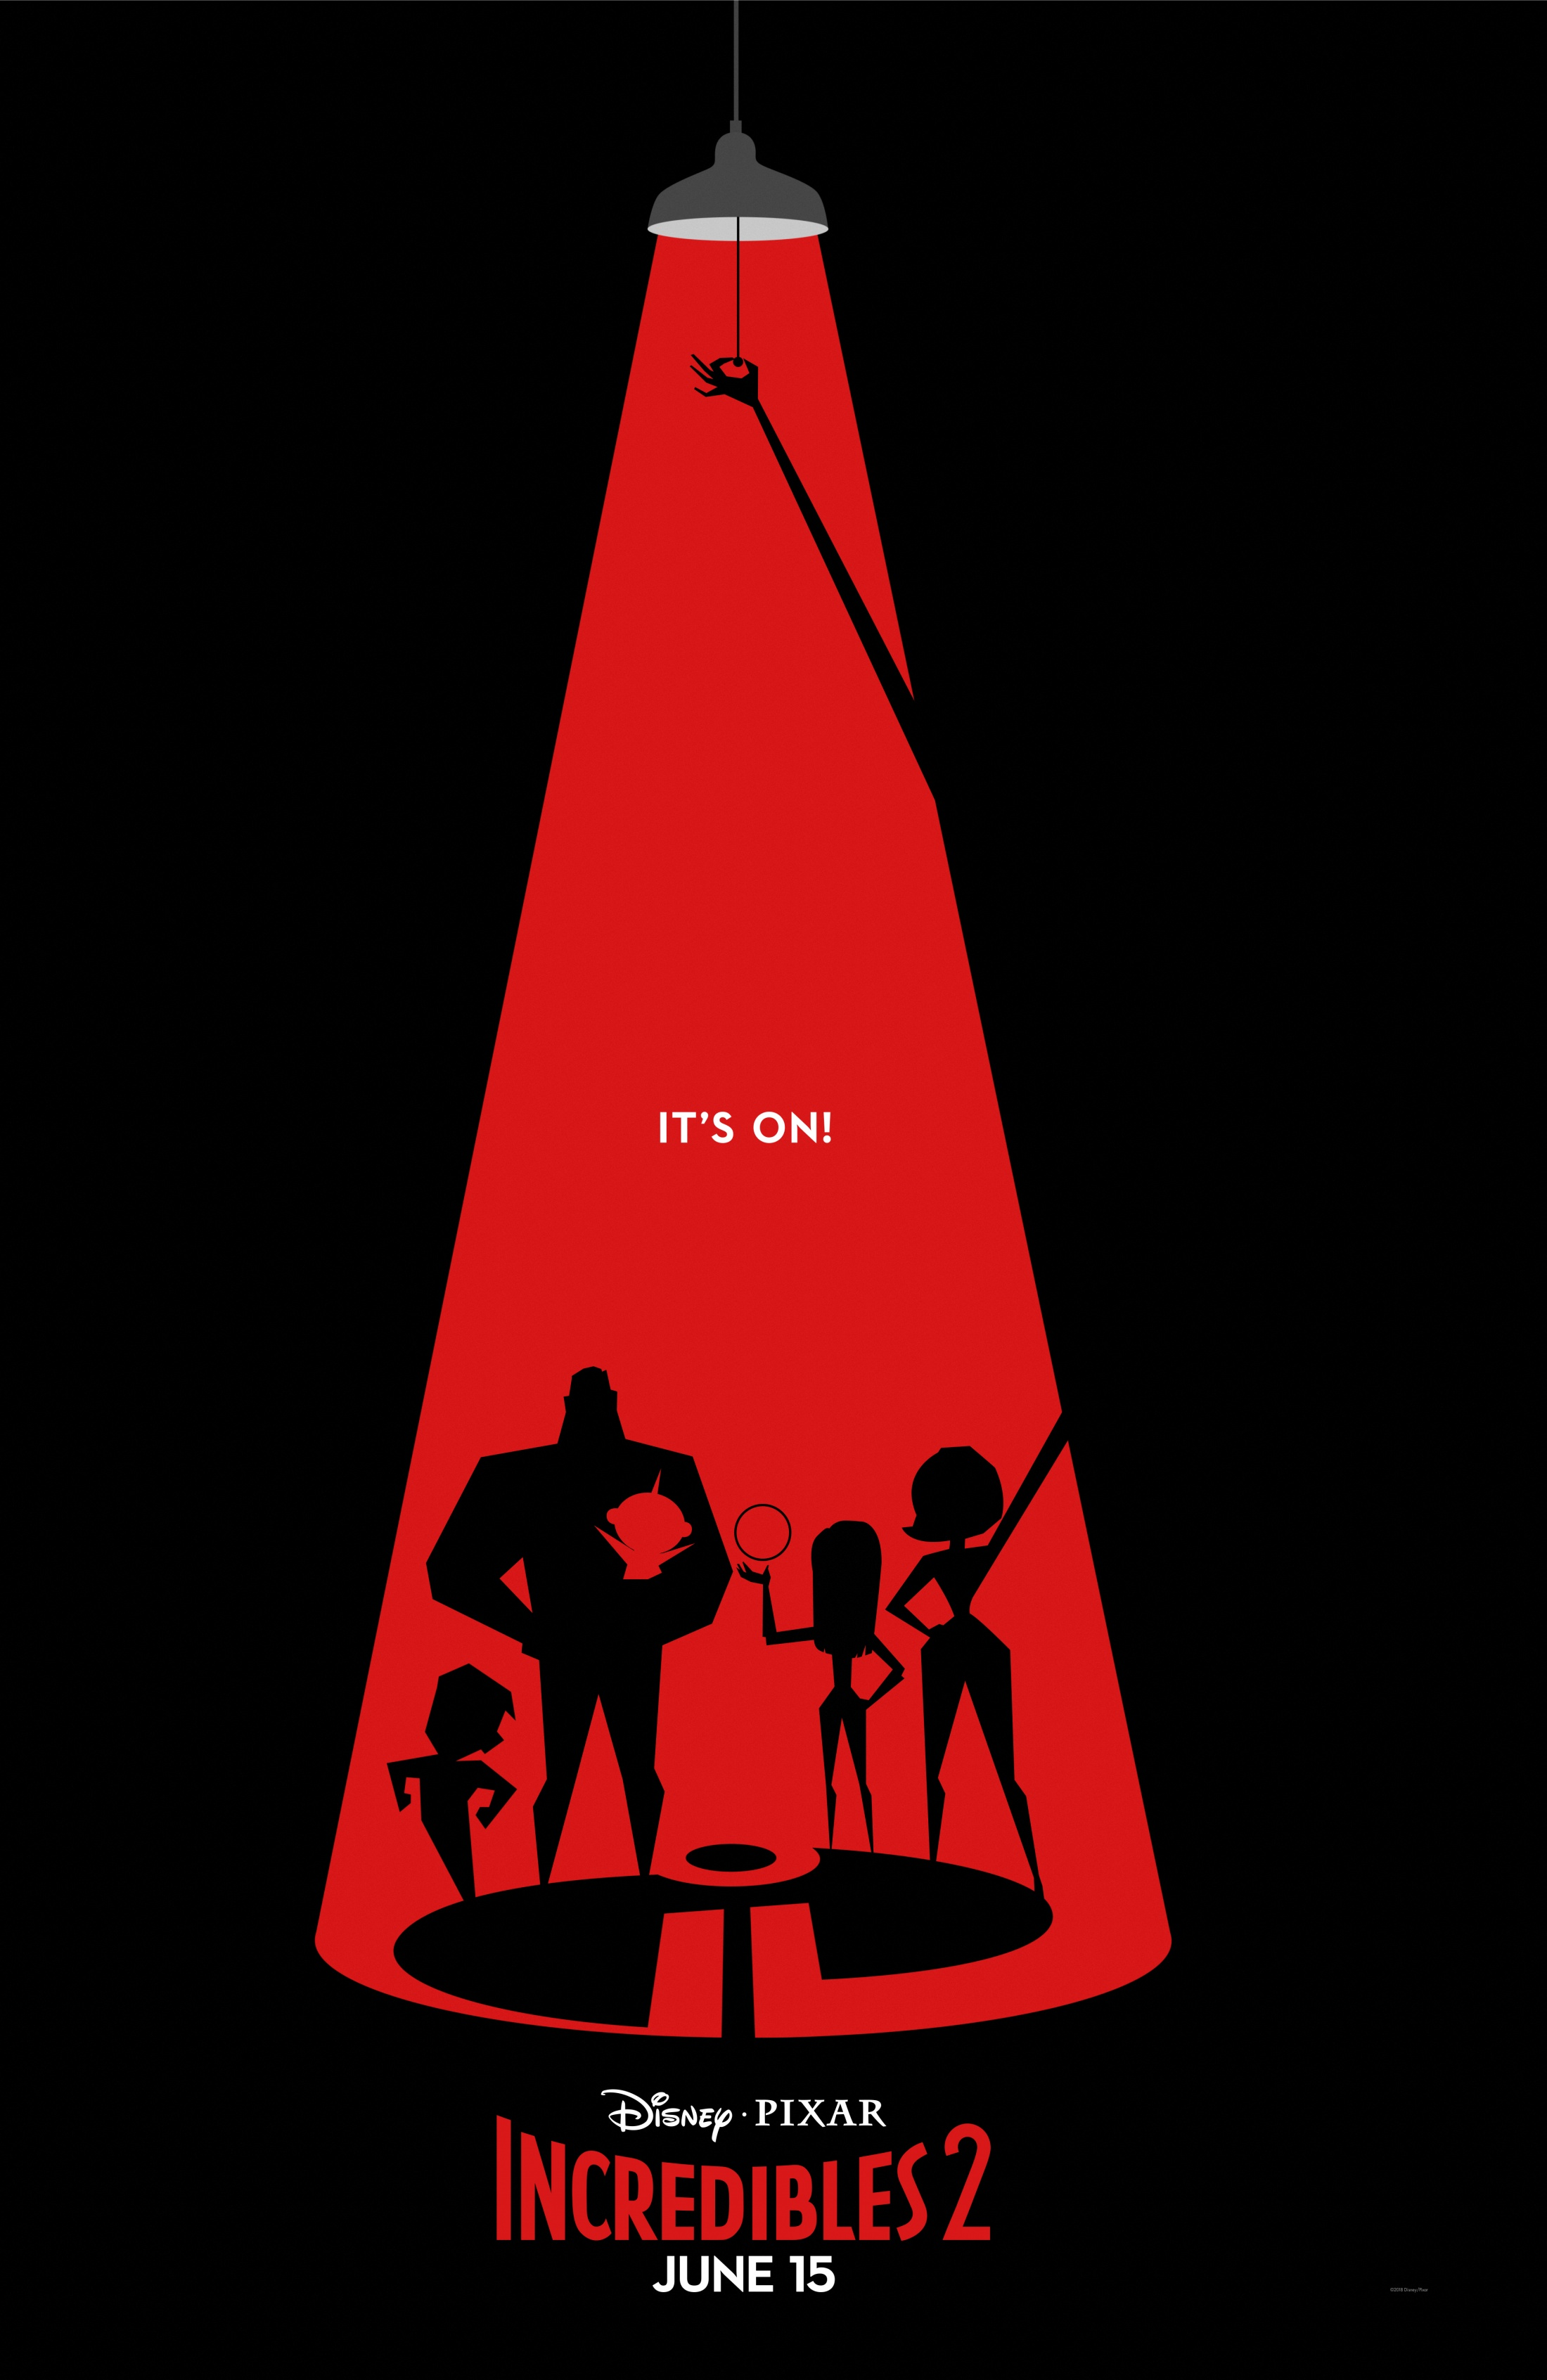 Thumbnail for Incredibles 2 Exclusive Graphic Poster Series Campaign